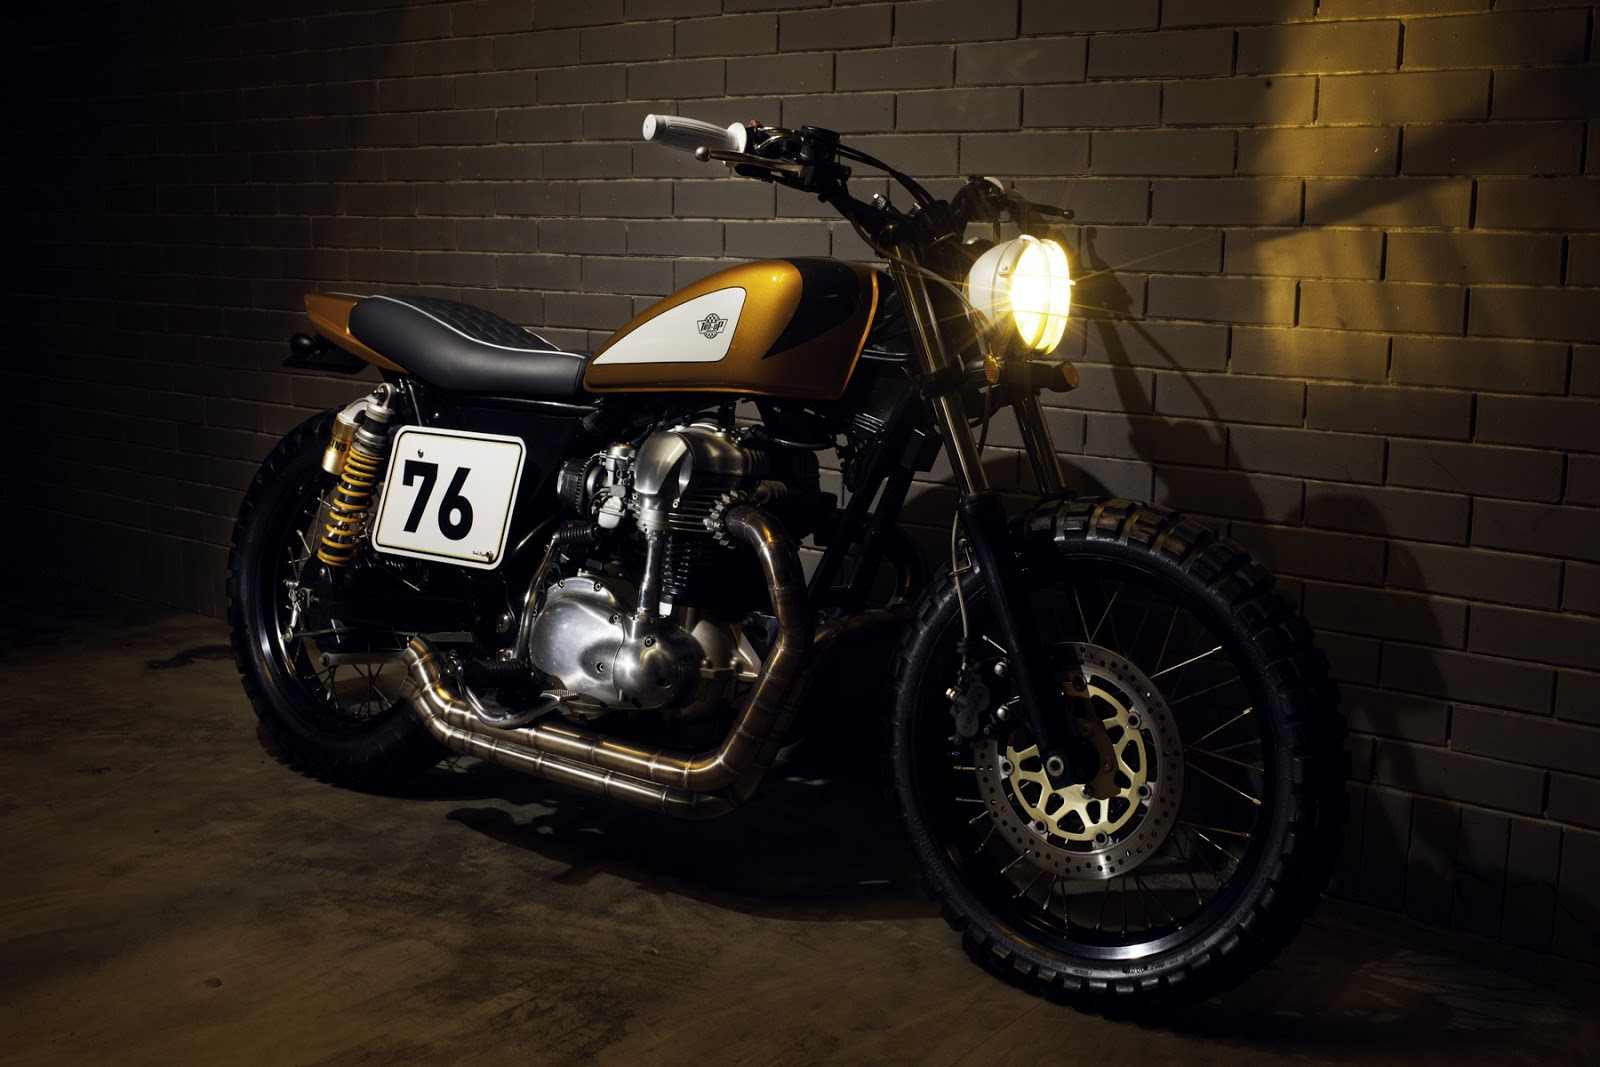 kawasaki w650 gold digger return of the cafe racers. Black Bedroom Furniture Sets. Home Design Ideas